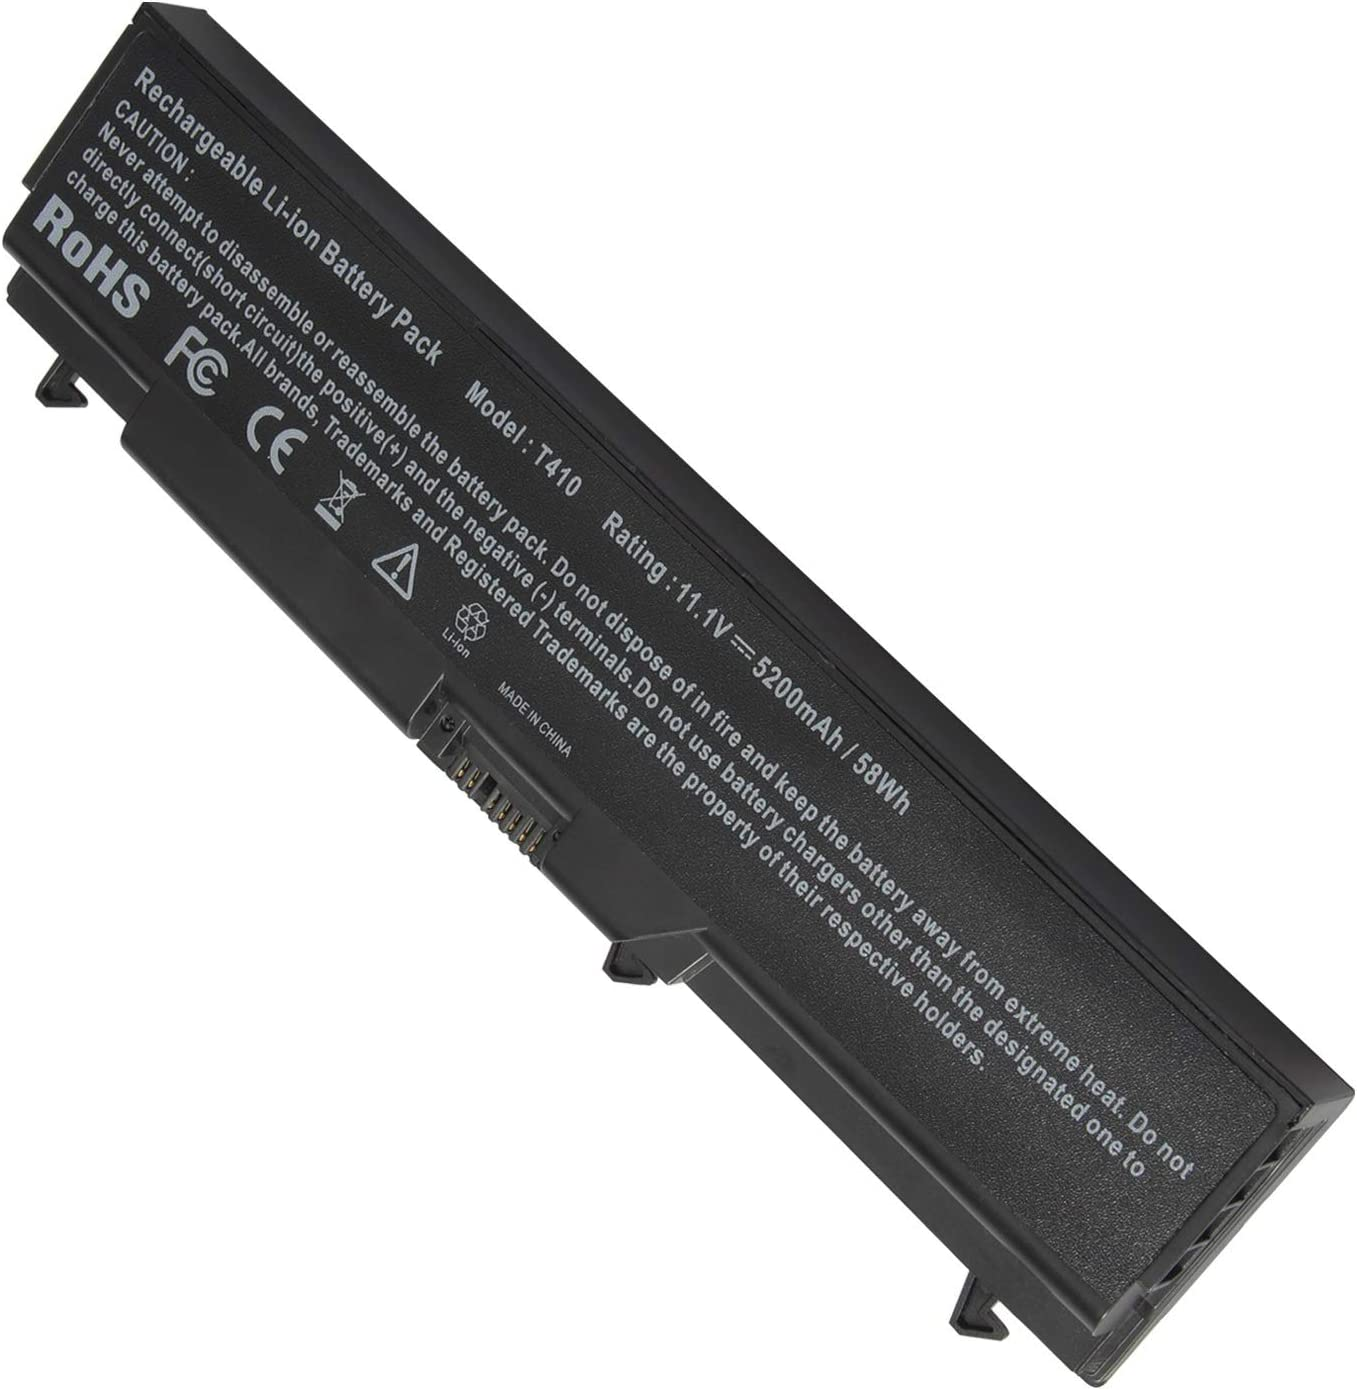 ARyee Laptop Battery Replacemet Compatible with Lenovo Thinkpad E40 E50 Edge 0578 E420 E425 E520 E525 L410 L412 L420 L421 L510 L512 L520 Sl410 Sl410k Sl510 T410 T410i T420 T510 T510i T520 W510 W520-12